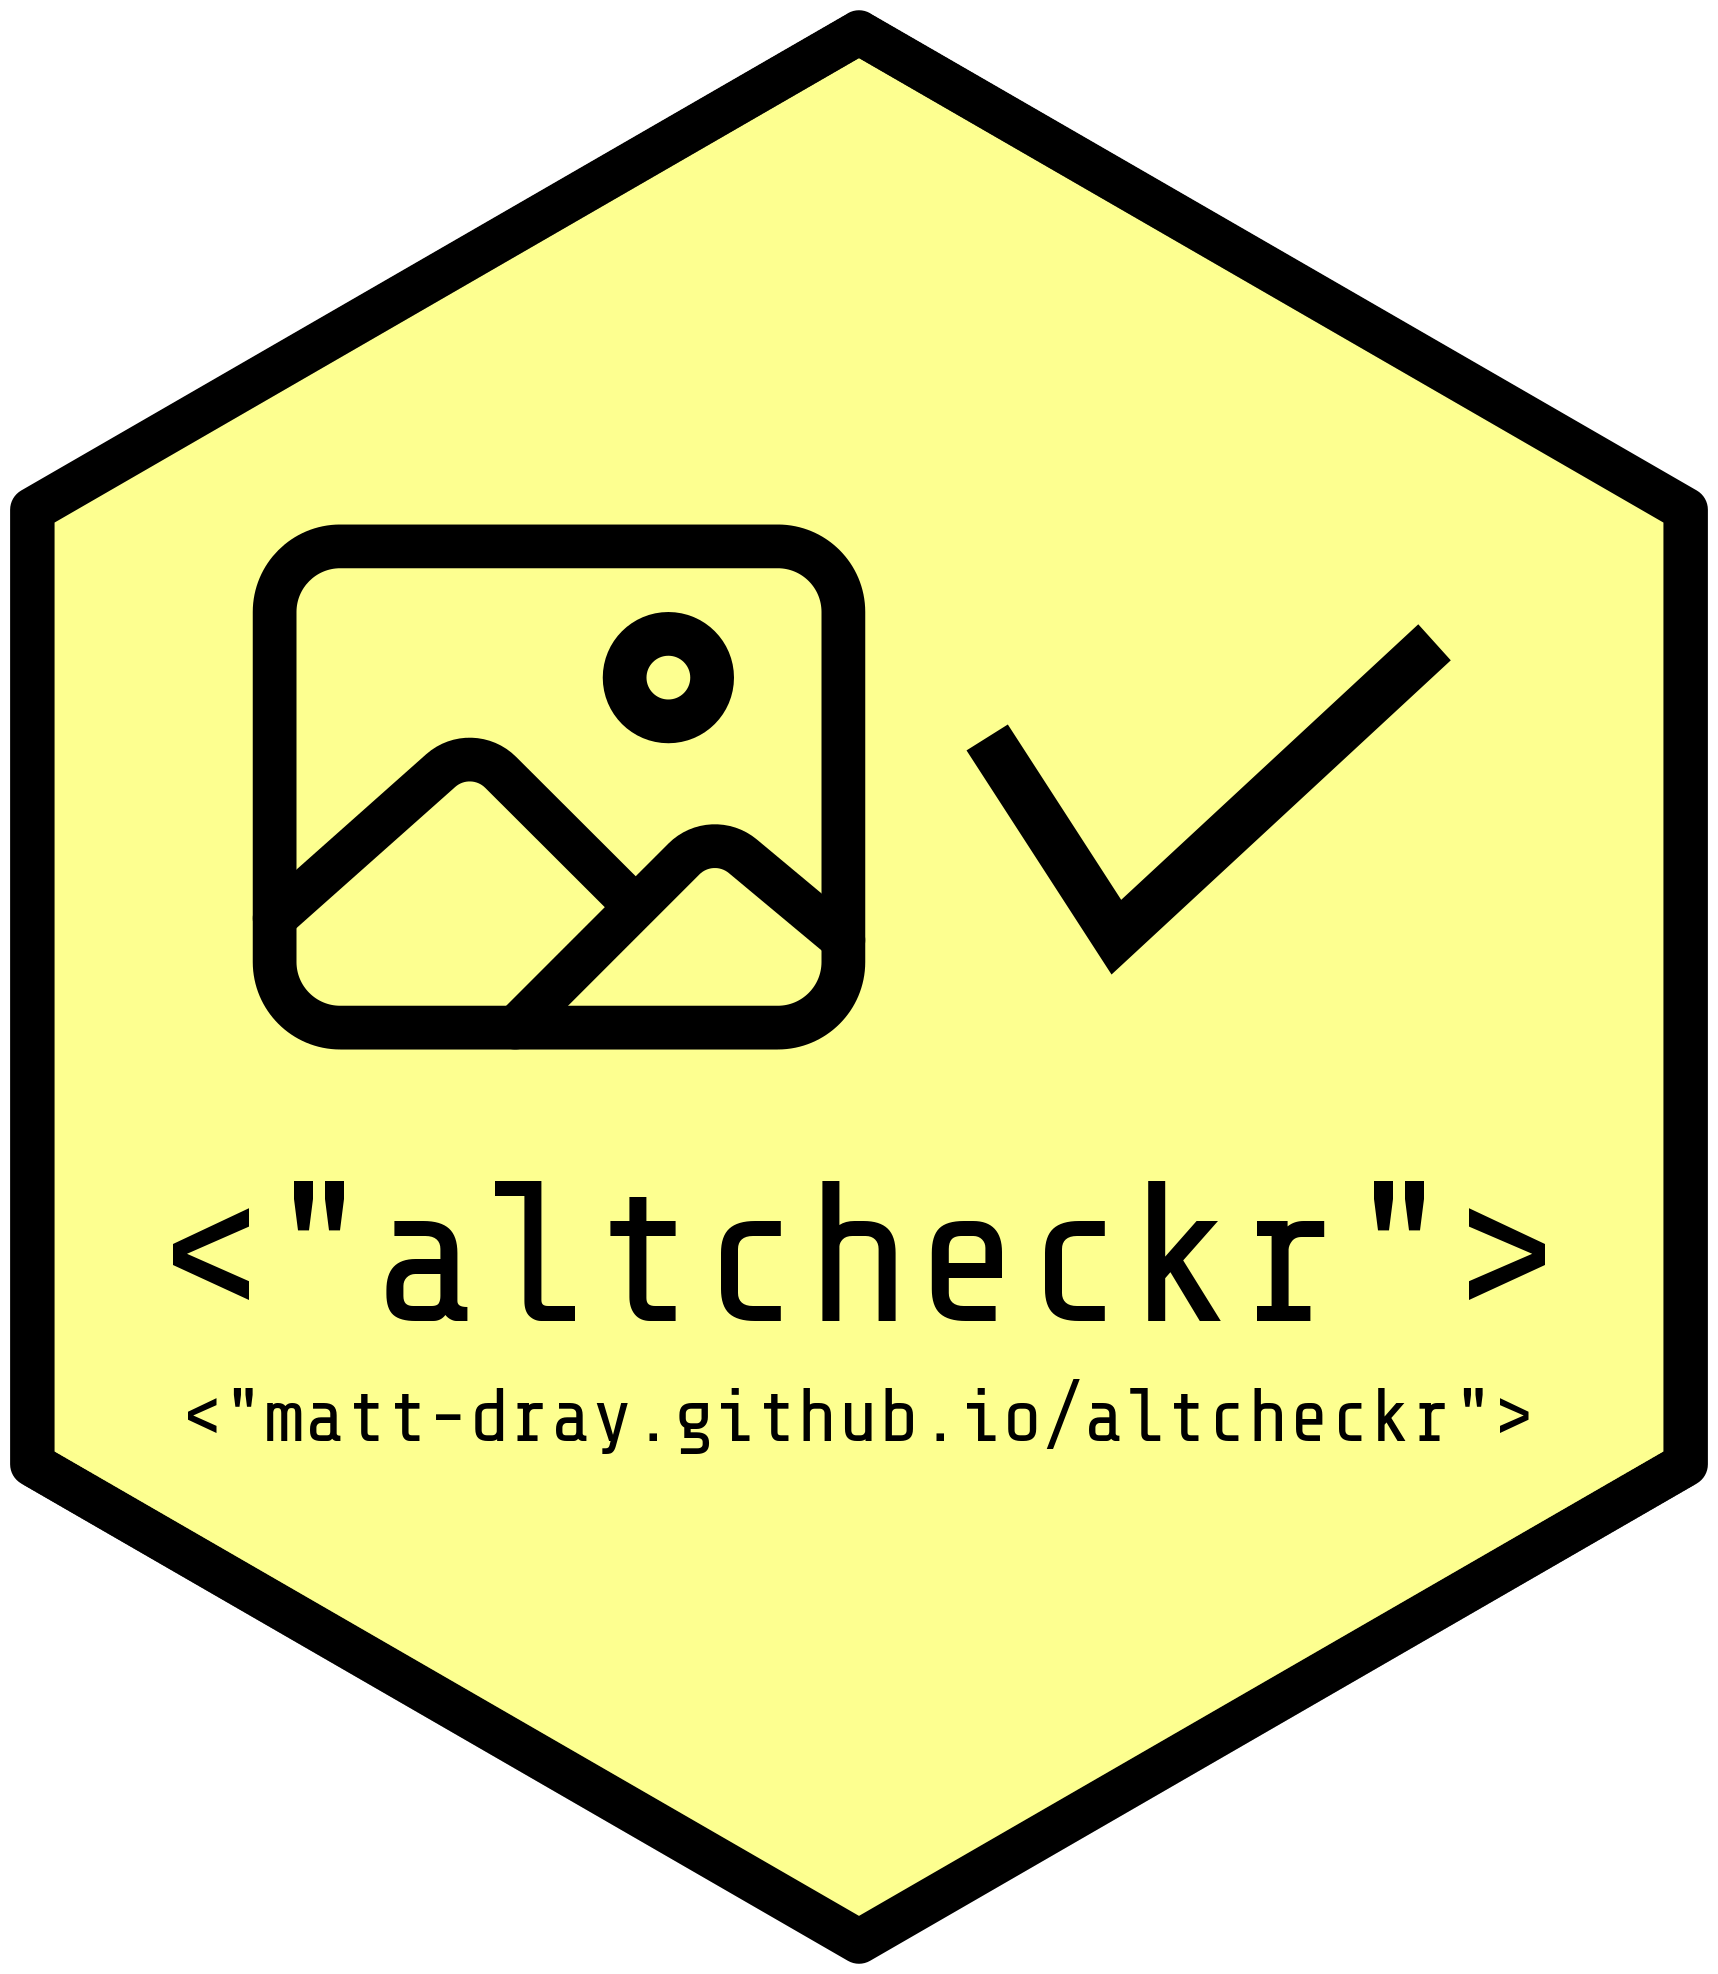 Hex sticker for altchecker, with the package name, a checkmark and the URL matt-dray.github.io/altcheckr.